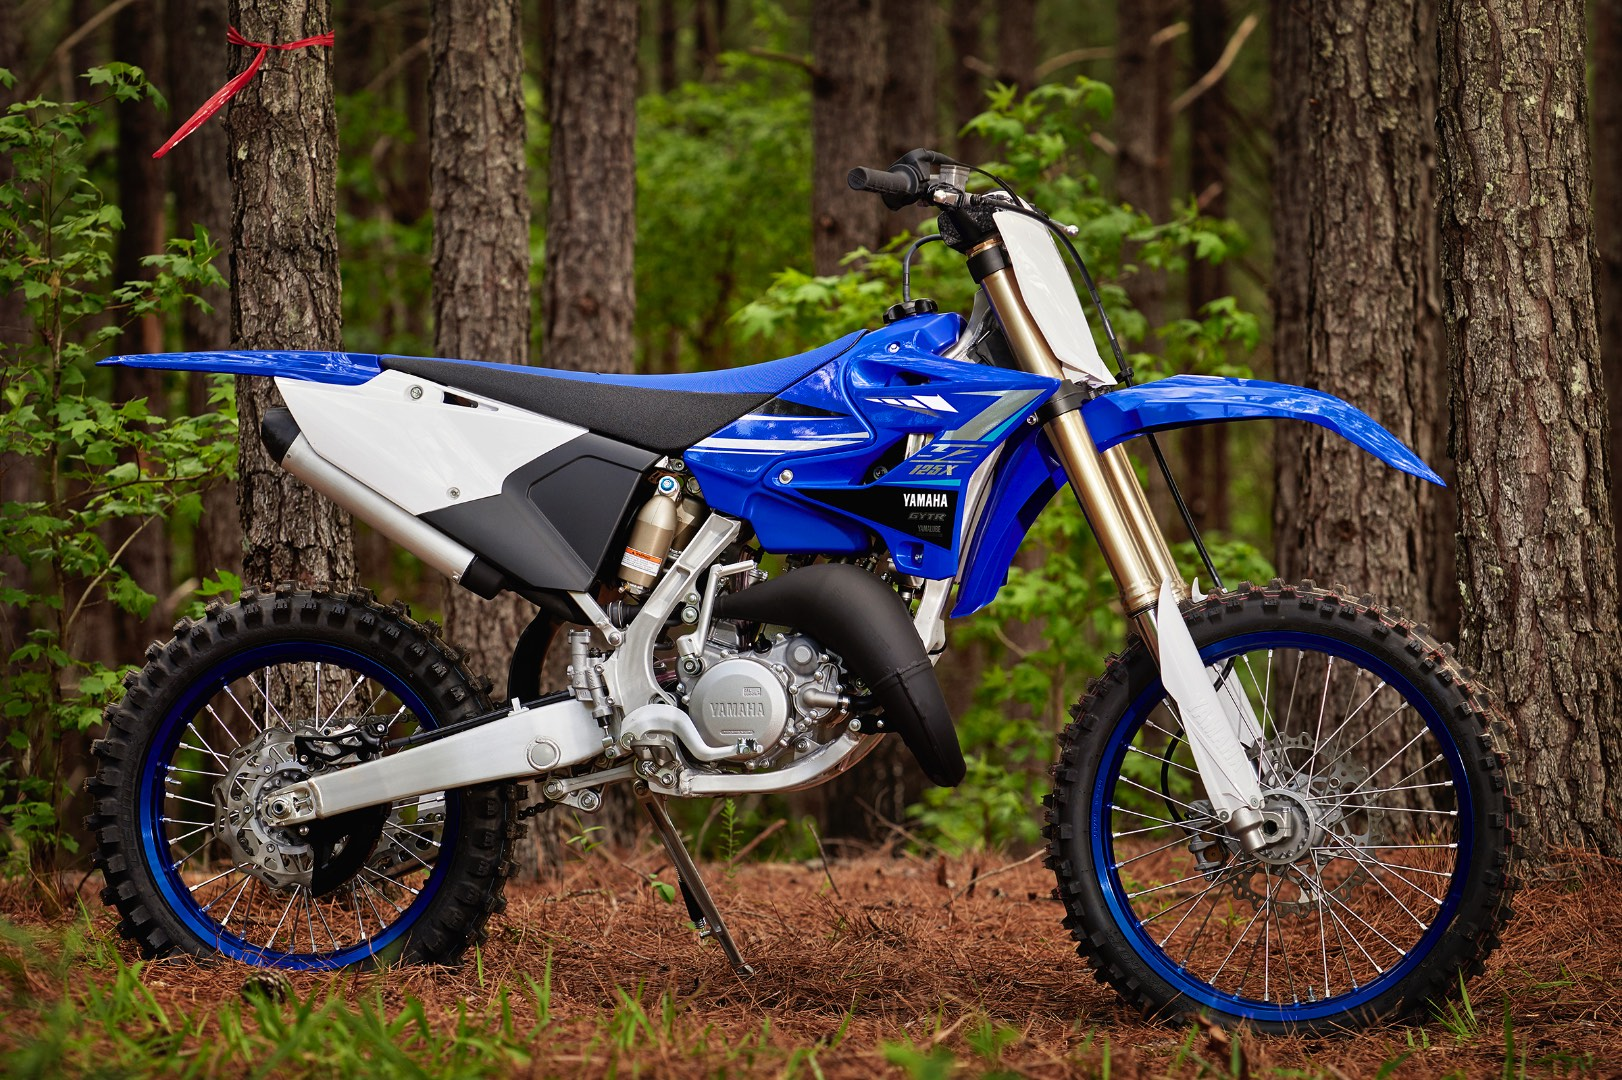 2020 Yamaha Yz125x First Look 17 Fast Facts